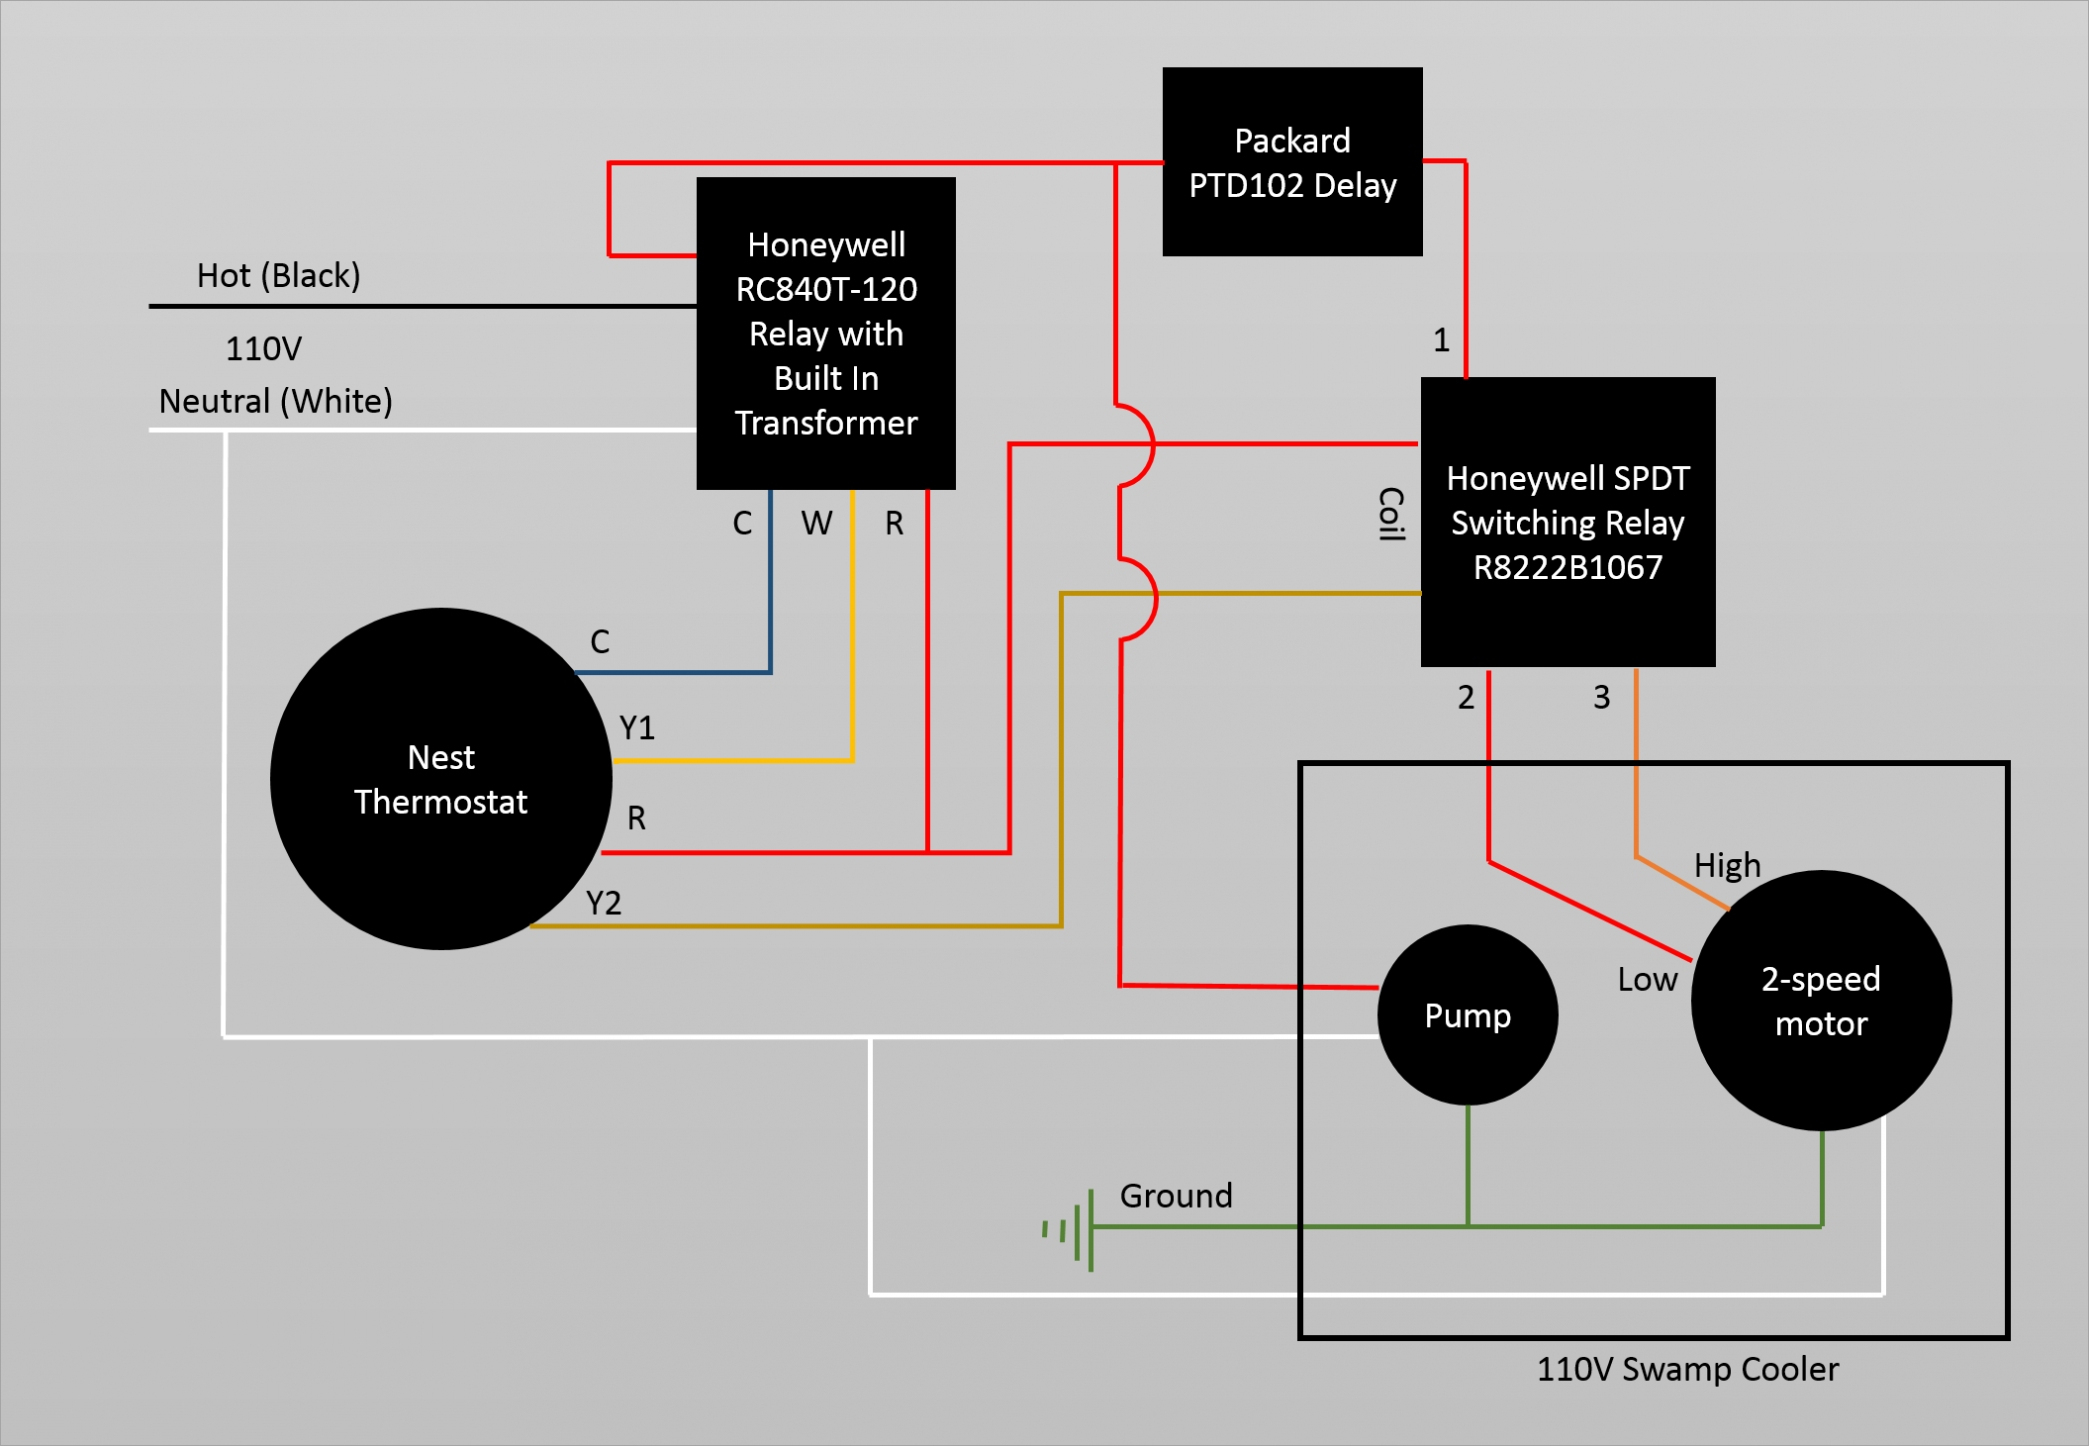 Luxpro Thermostat 2Wire Wiring Diagram | Wiring Library - Honeywell Thermostat Wiring Diagram